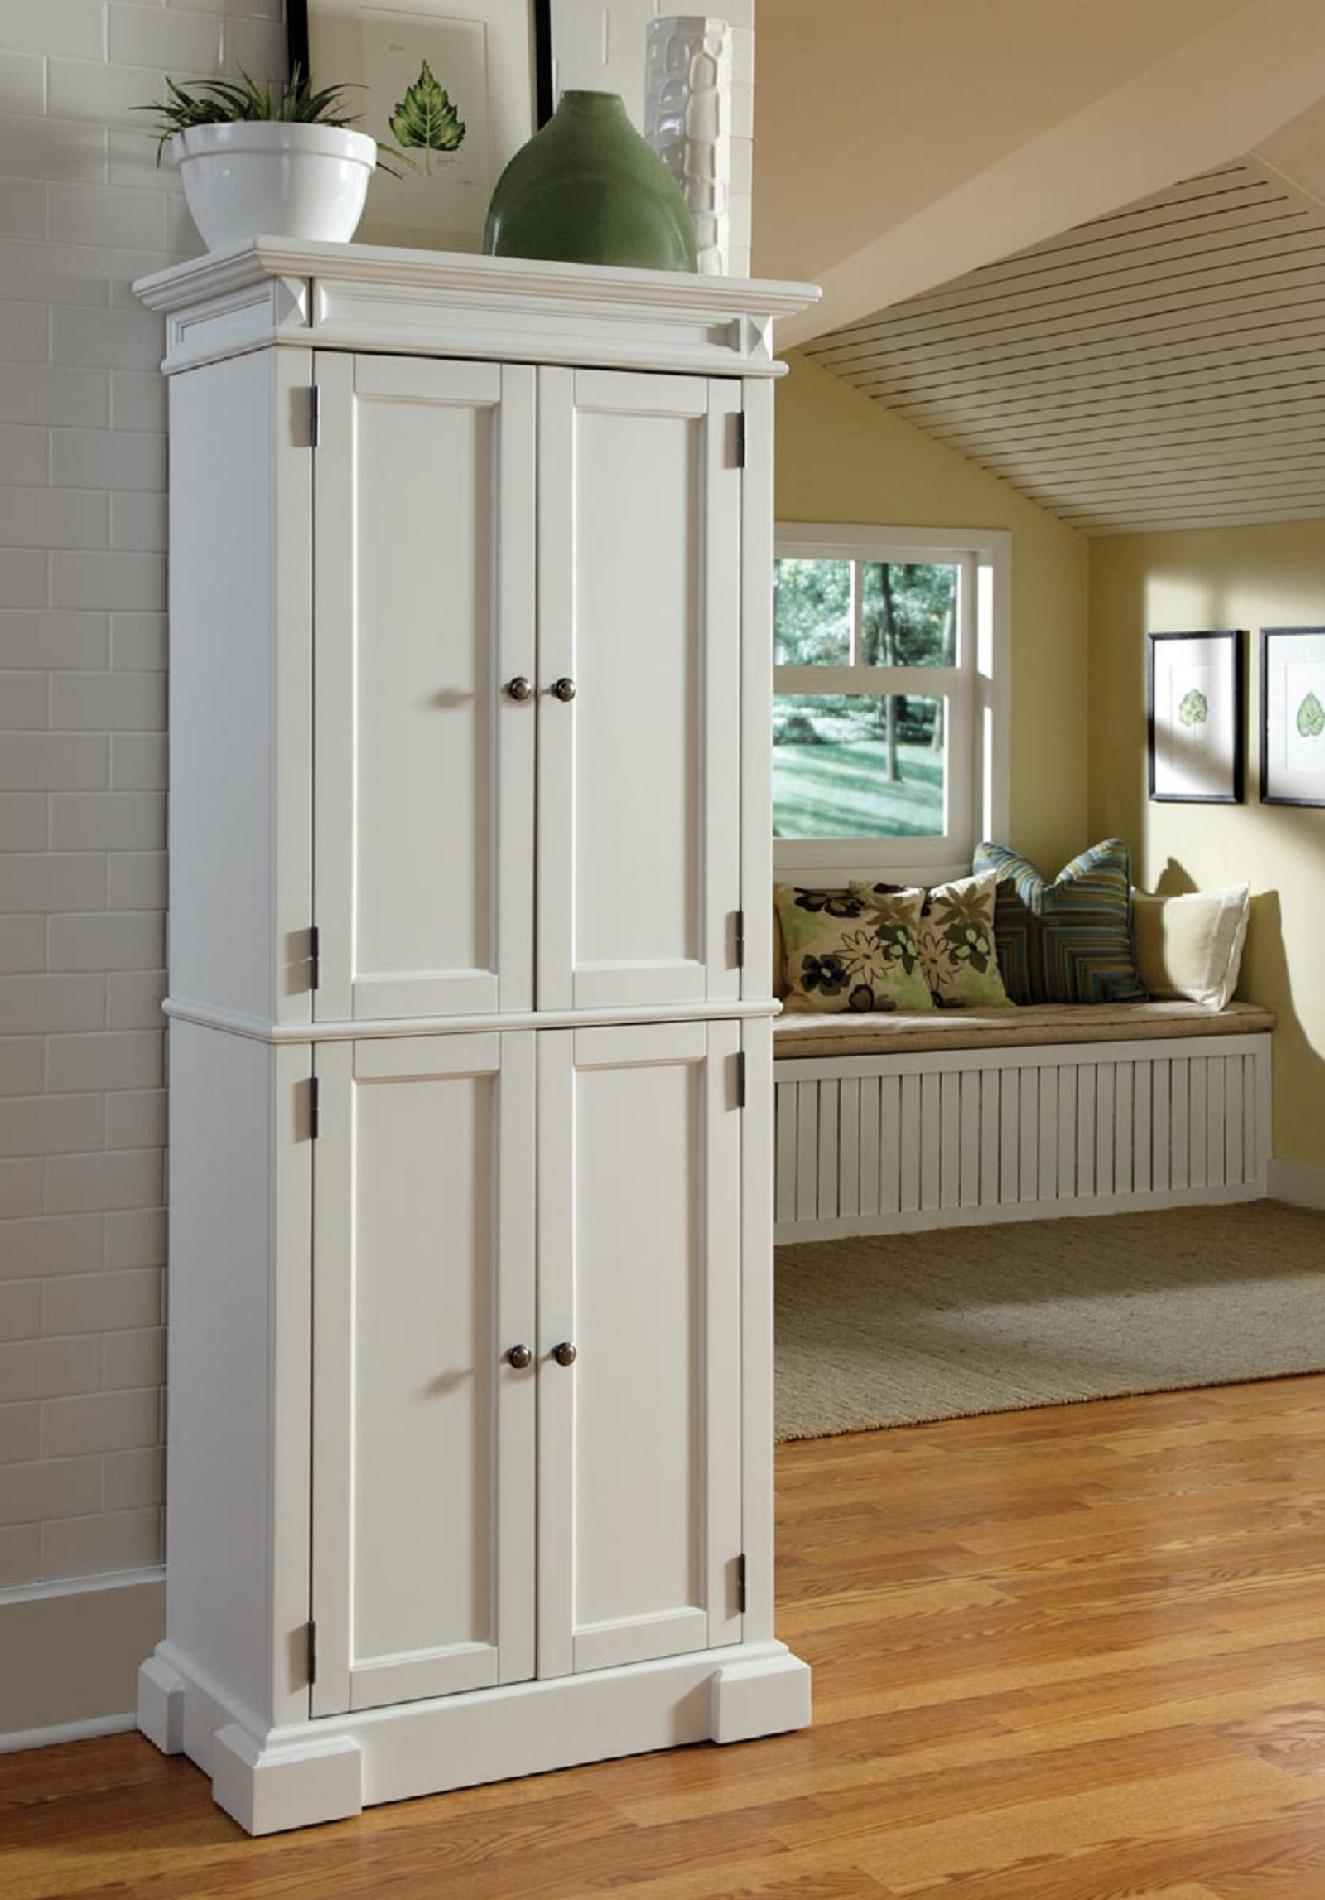 Bon Home Styles Pantry Cabinet In White Finish